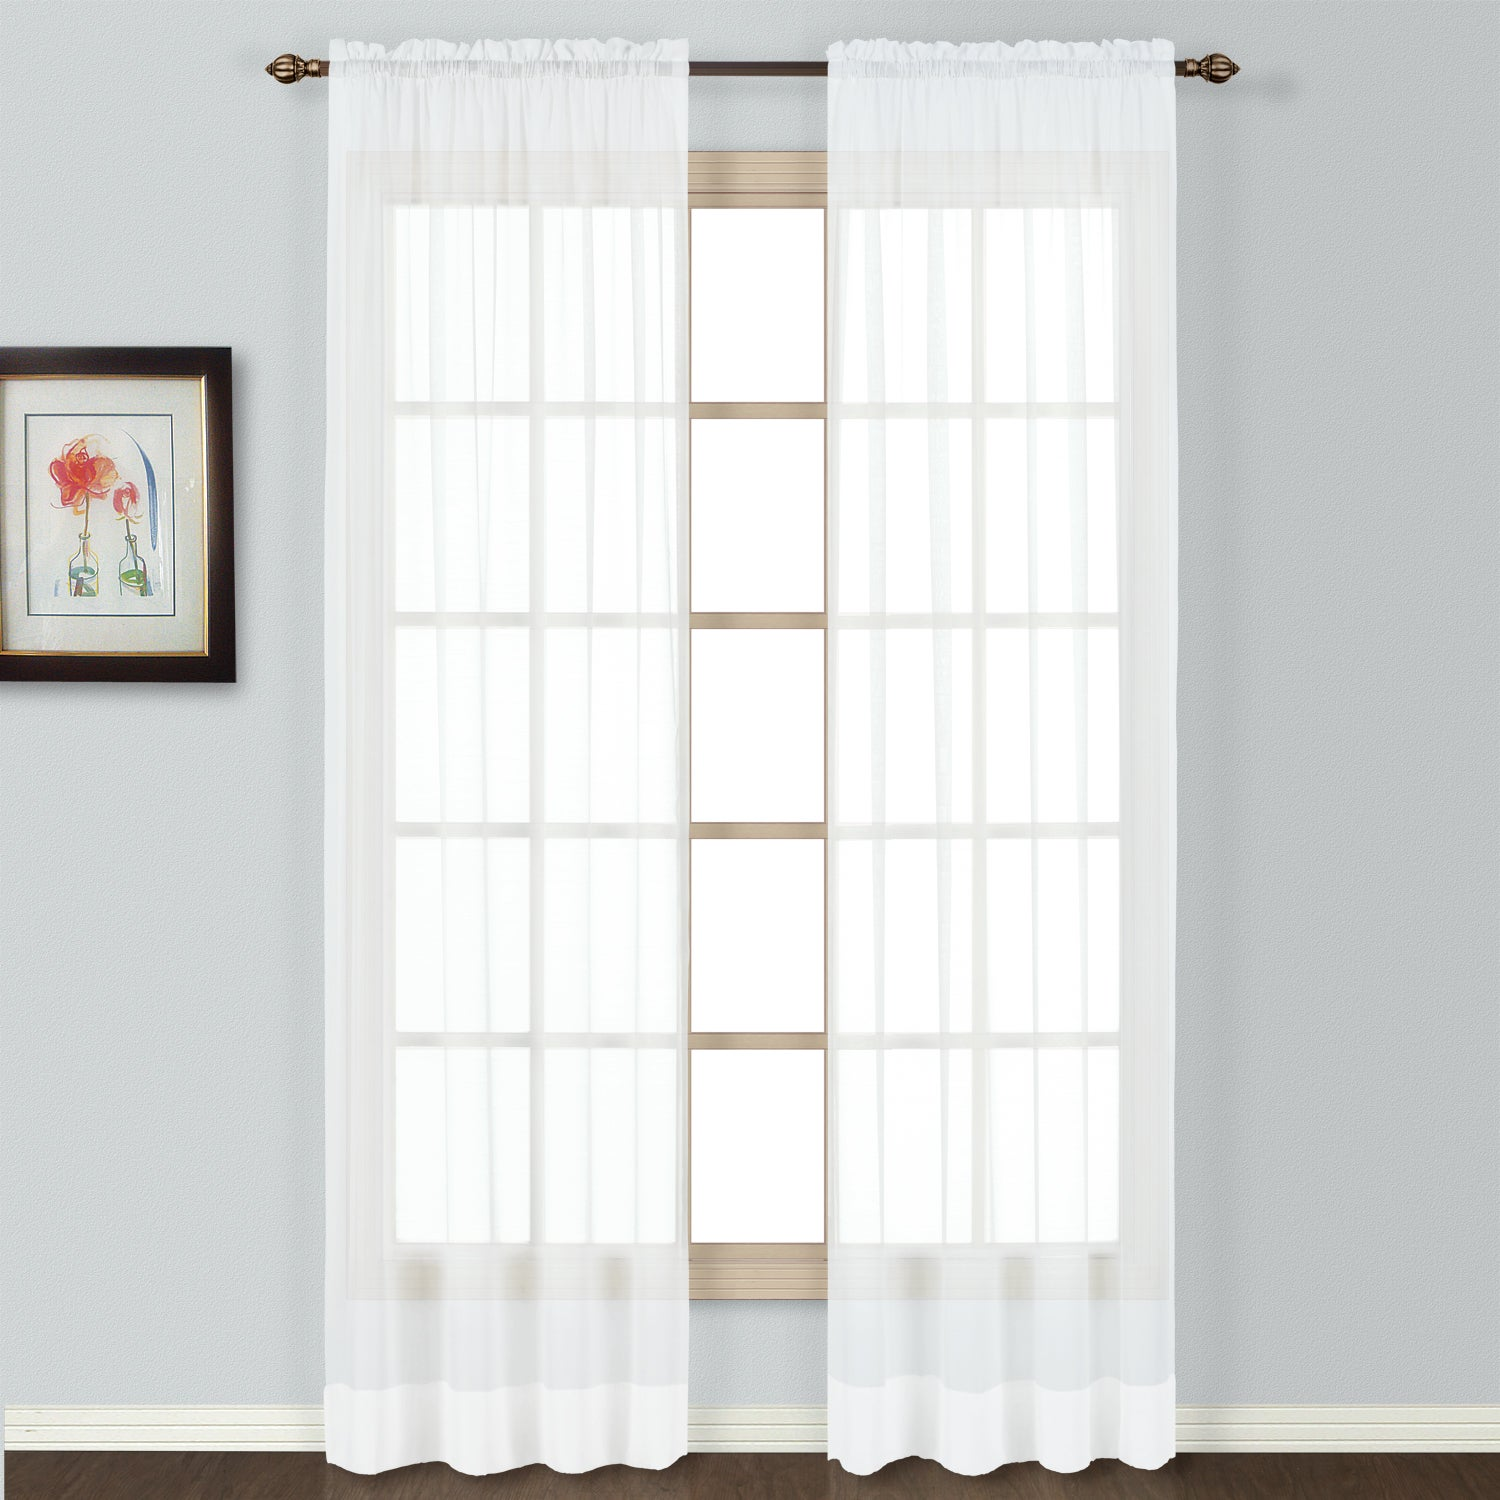 homes gardens walmart key greek and curtain bdab curtains ip grommets com better panel with sizes